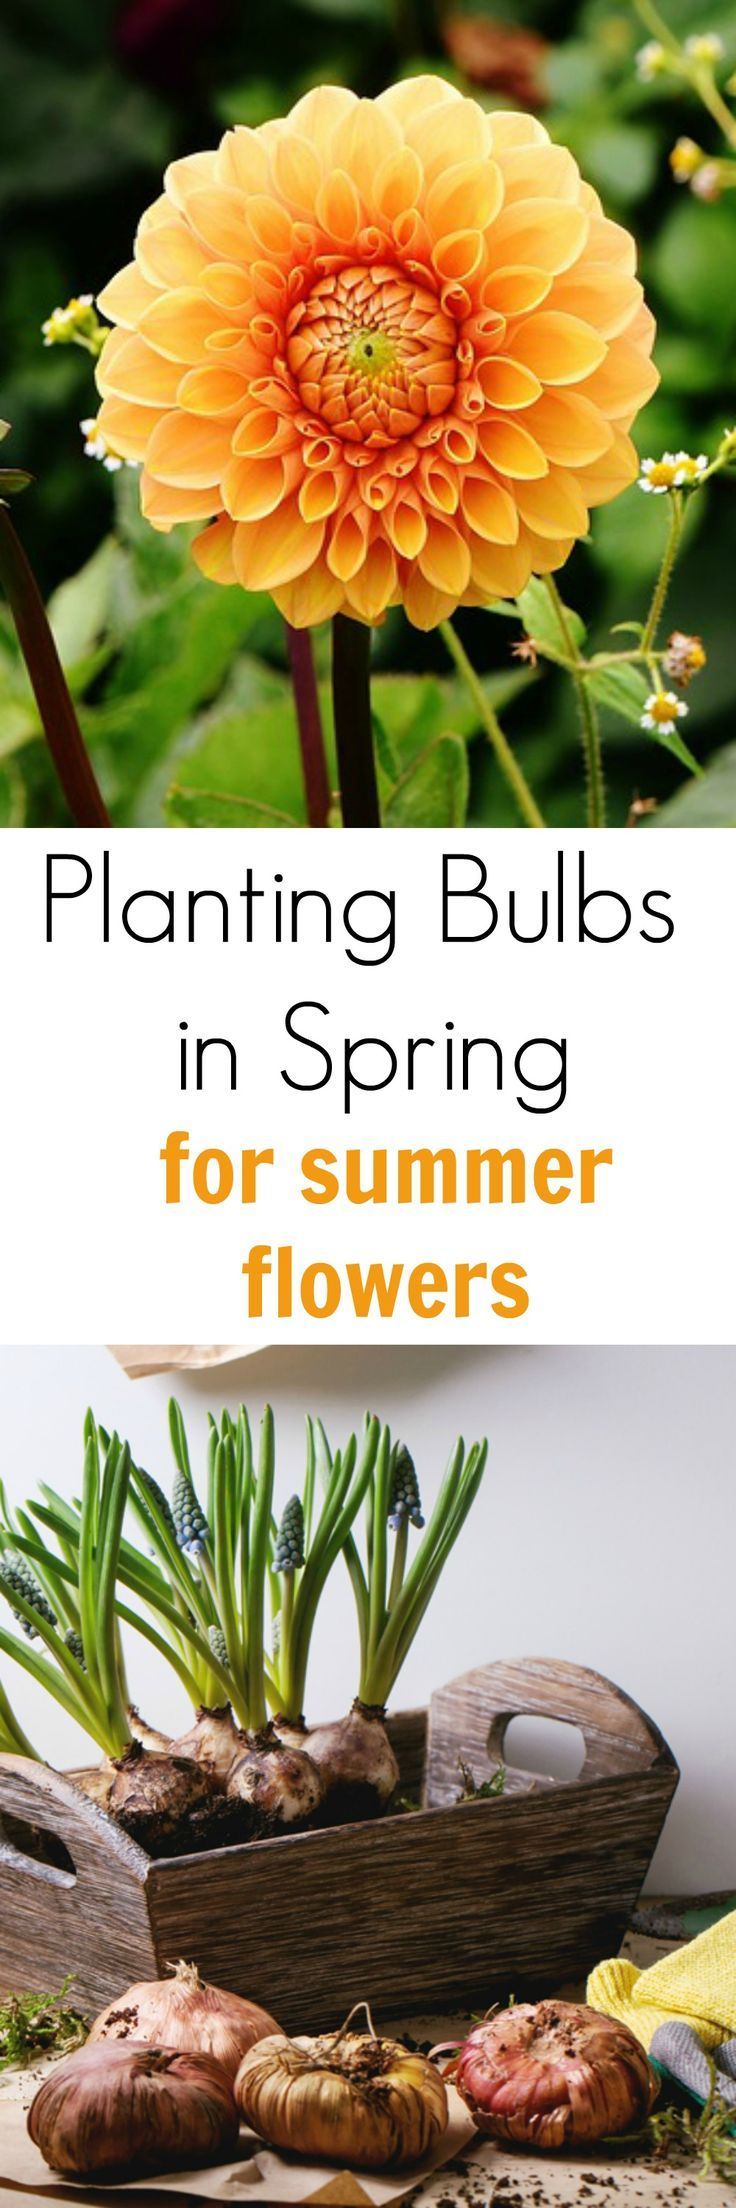 Tips for Planting Bulbs in Spring for Summer Flowers